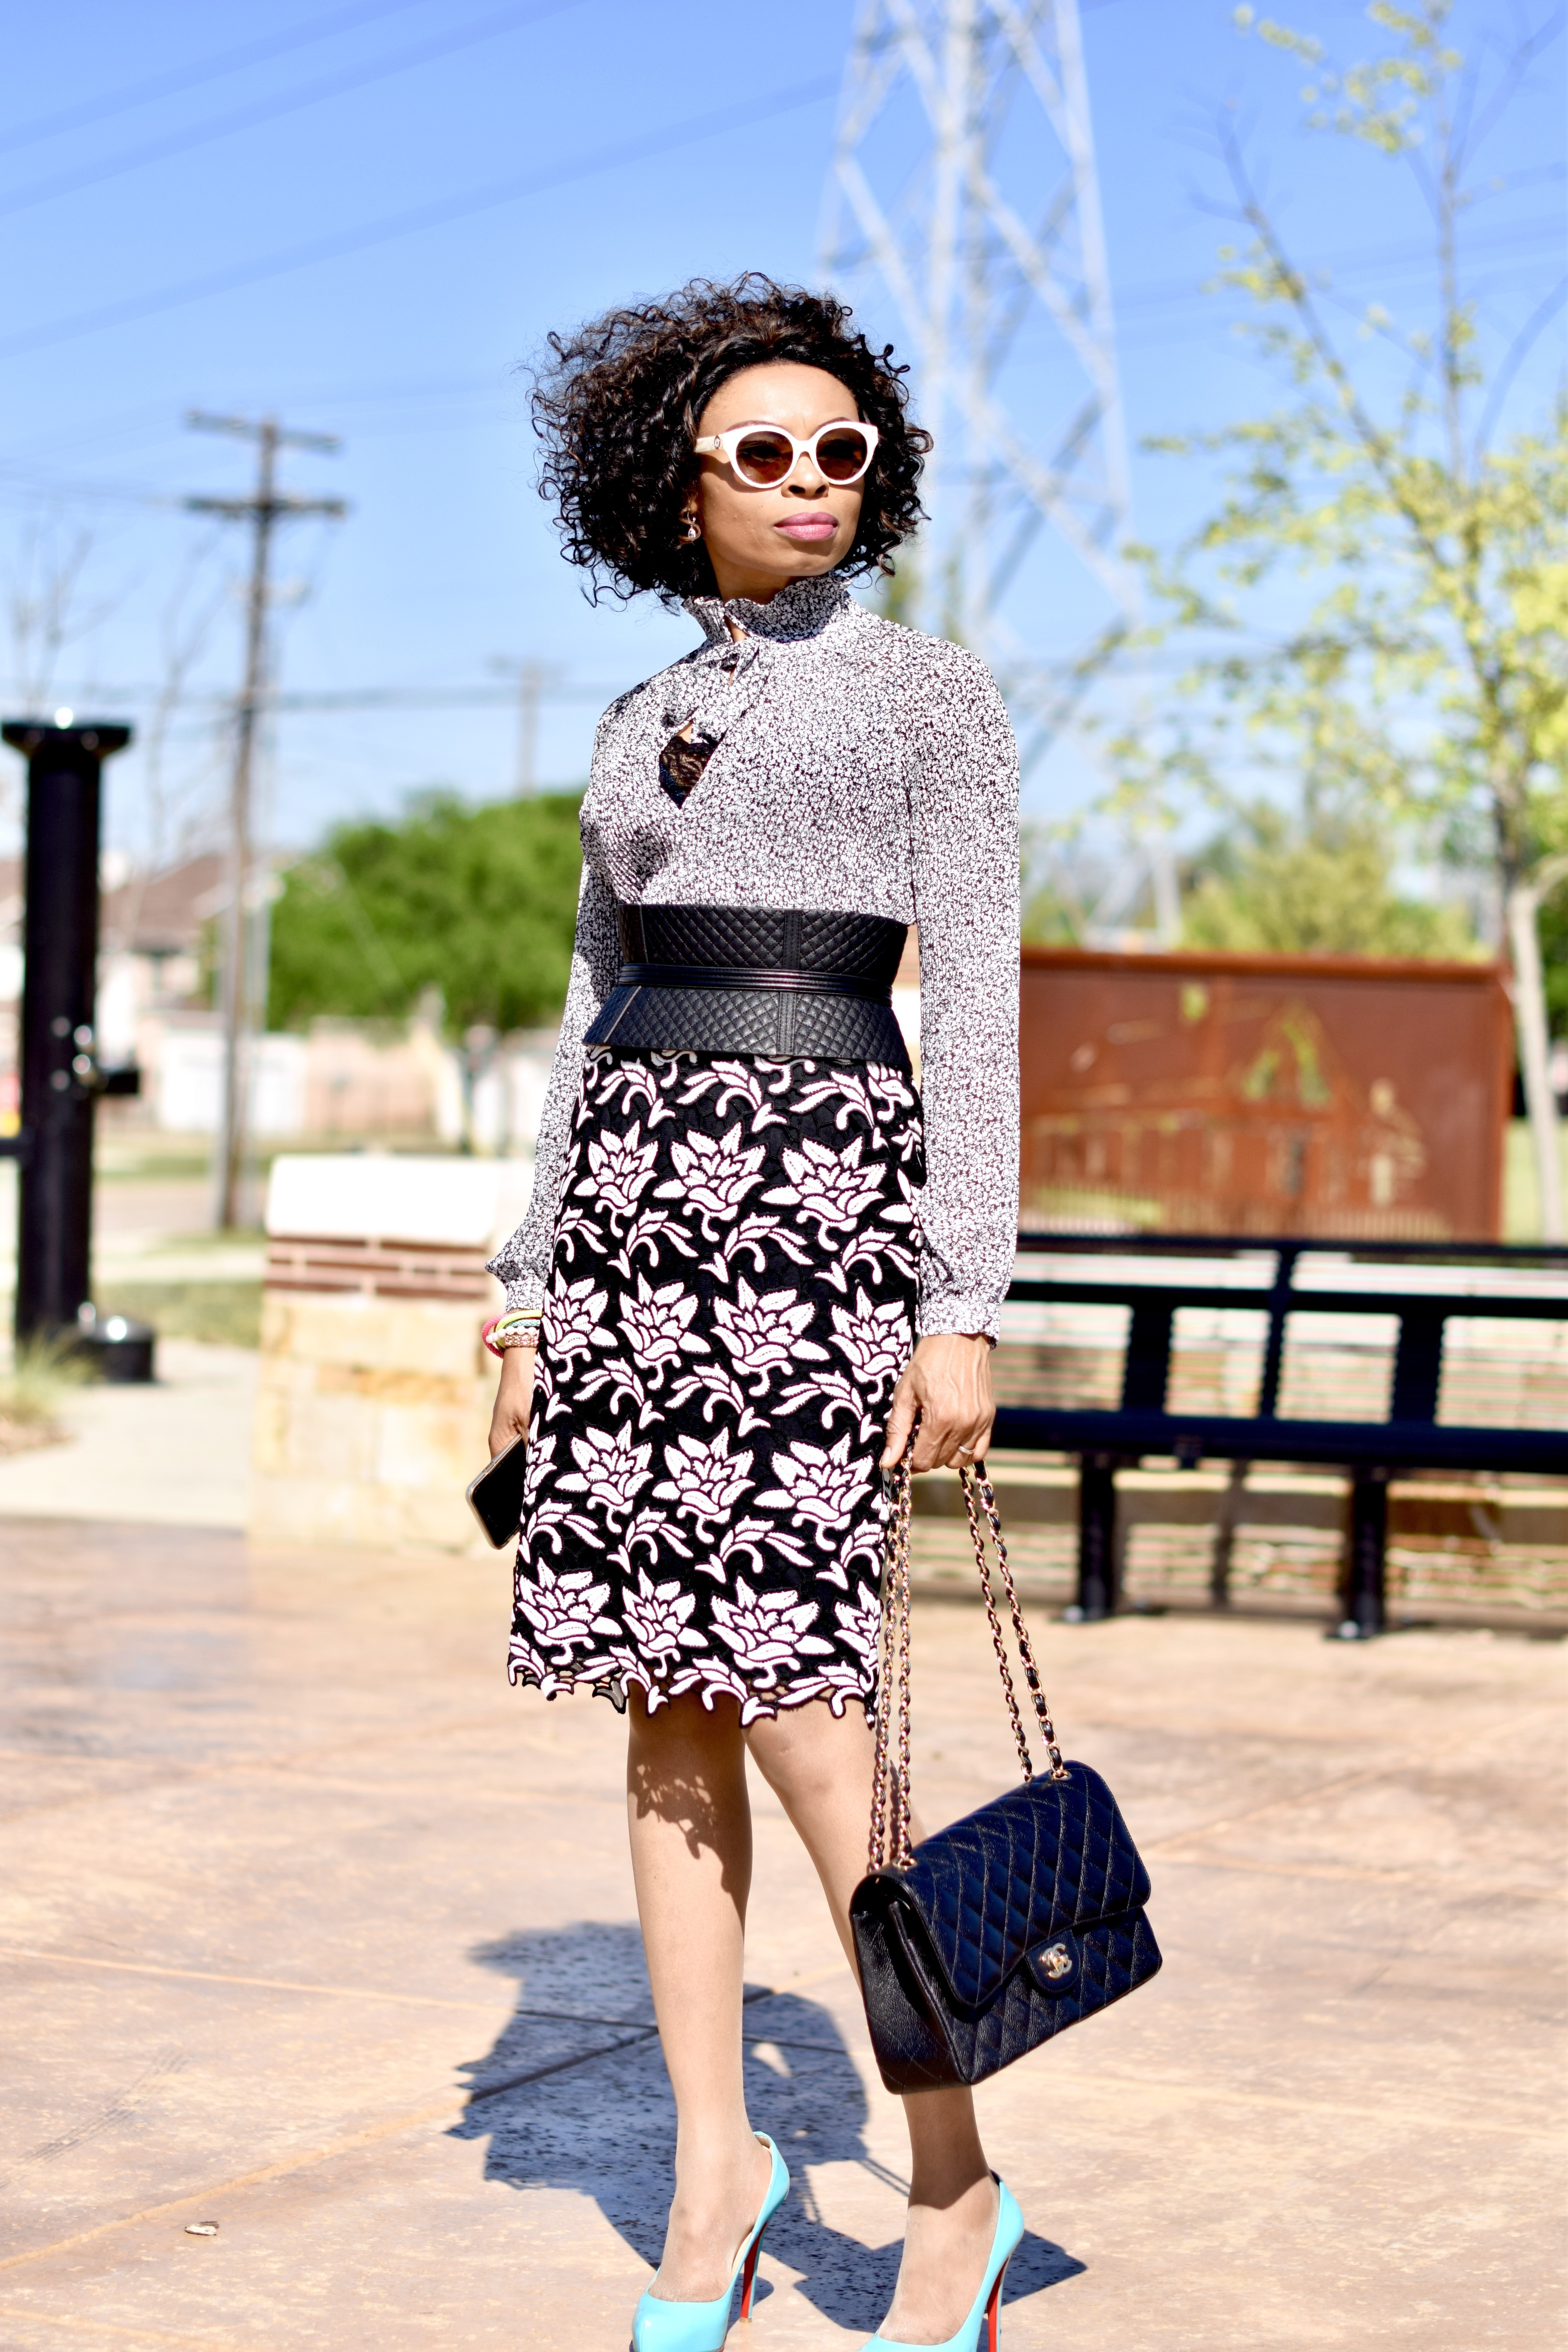 Floral blouse + Floral Skirt monochrome spring look Posted by Vivellefashion